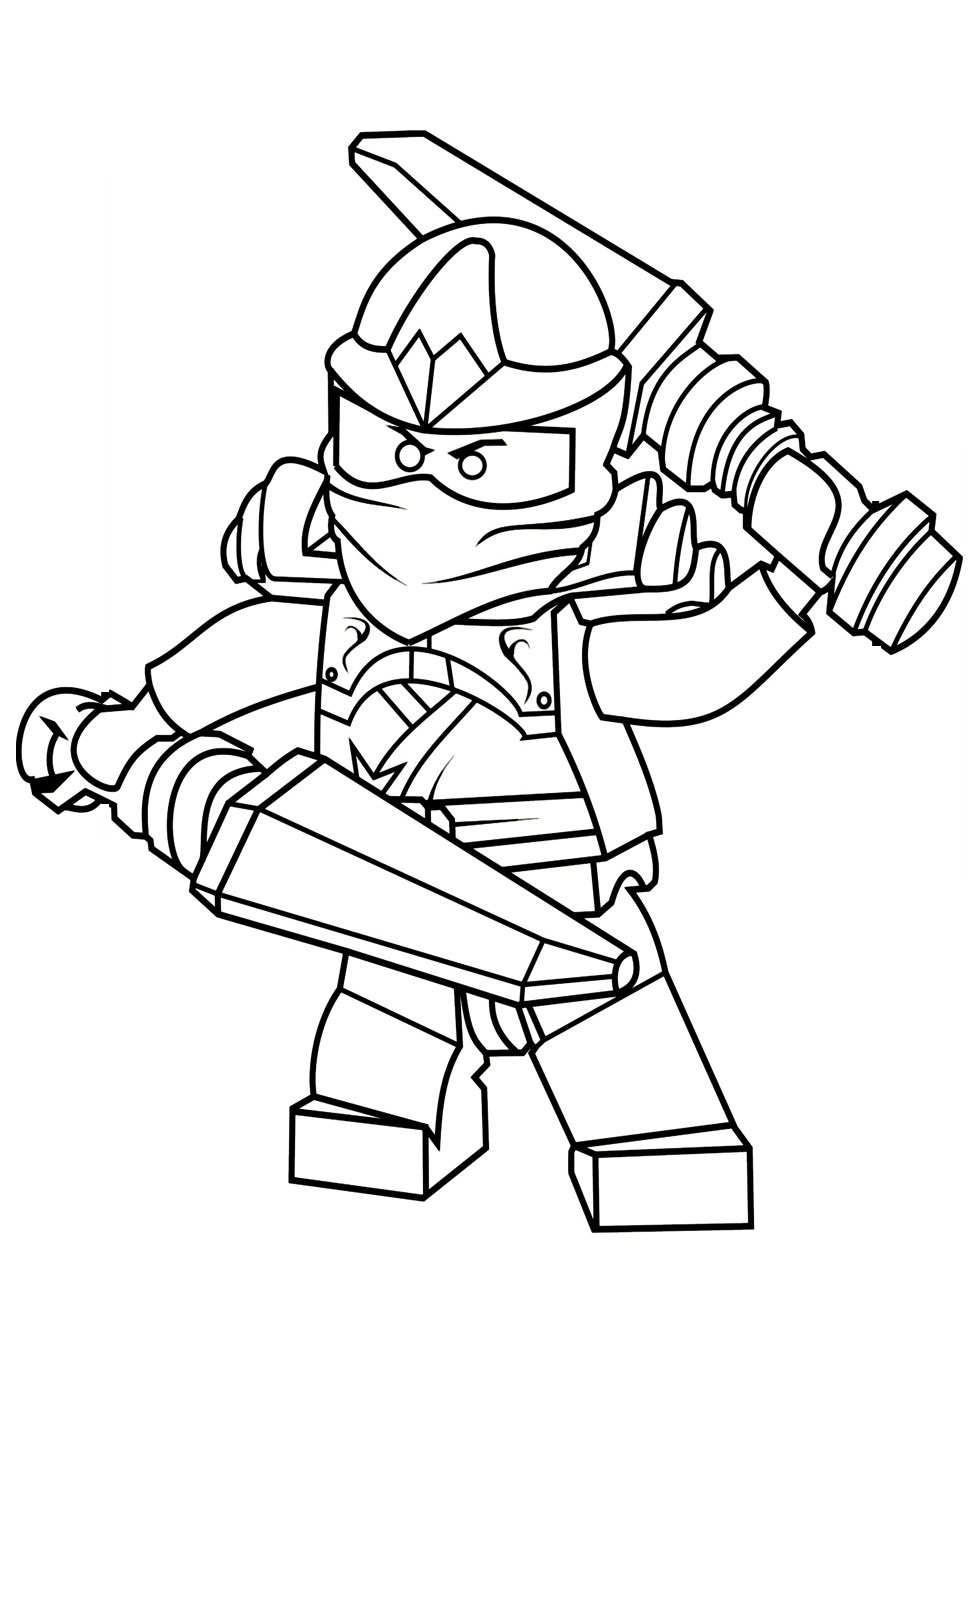 lego ninjago 2014 coloring pages - photo#5